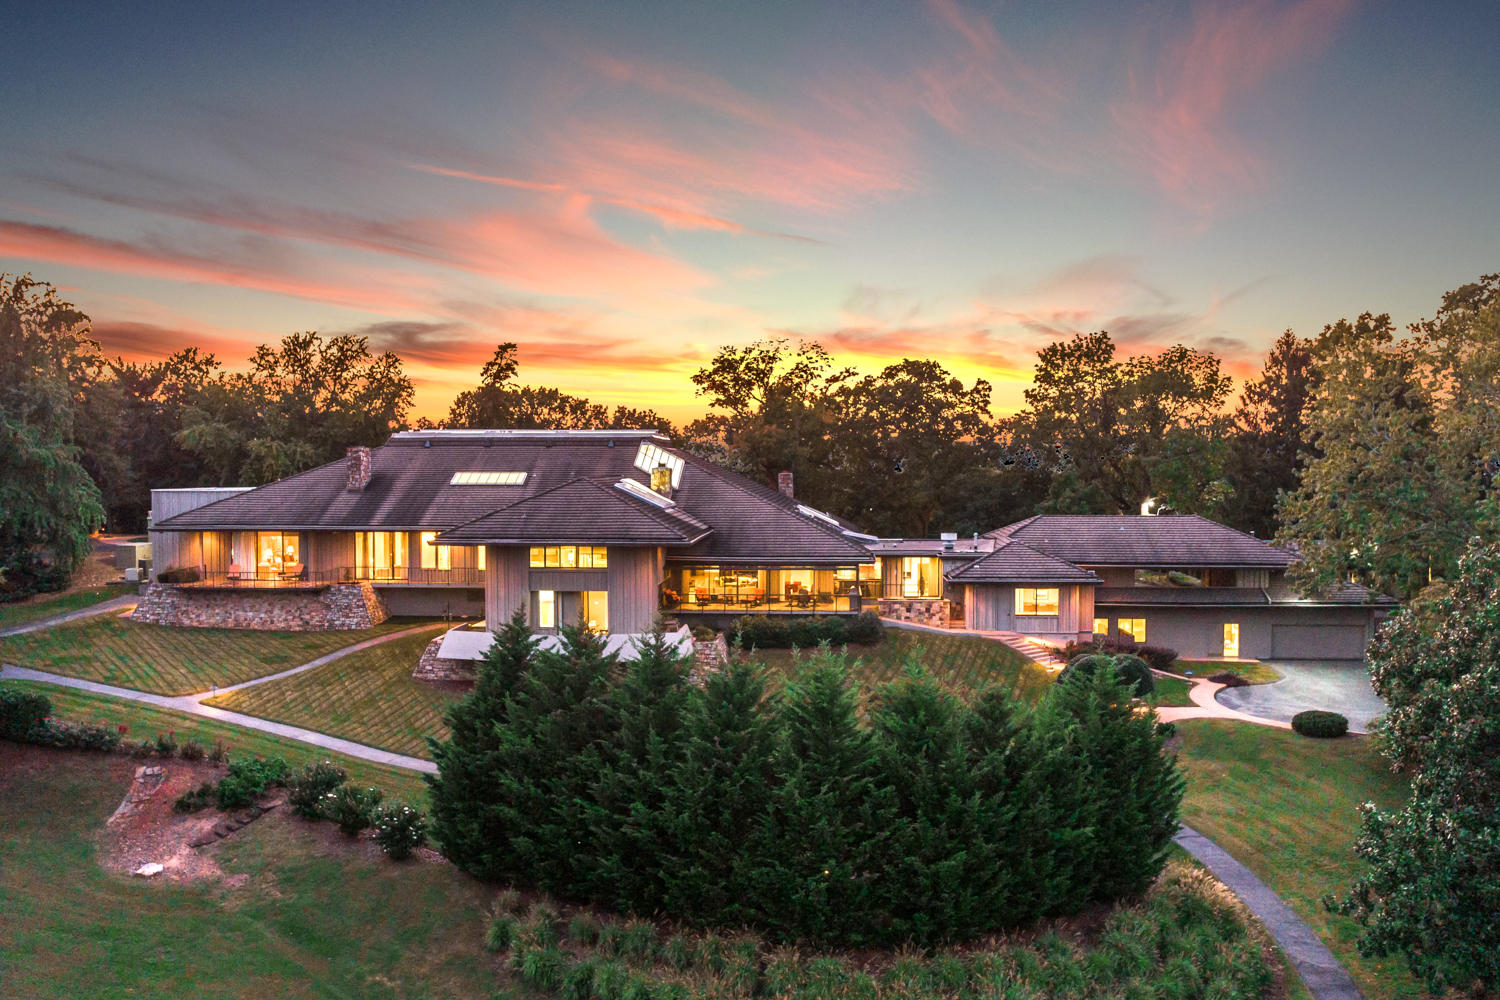 240 S Crest Rd, Chattanooga, TN 37404